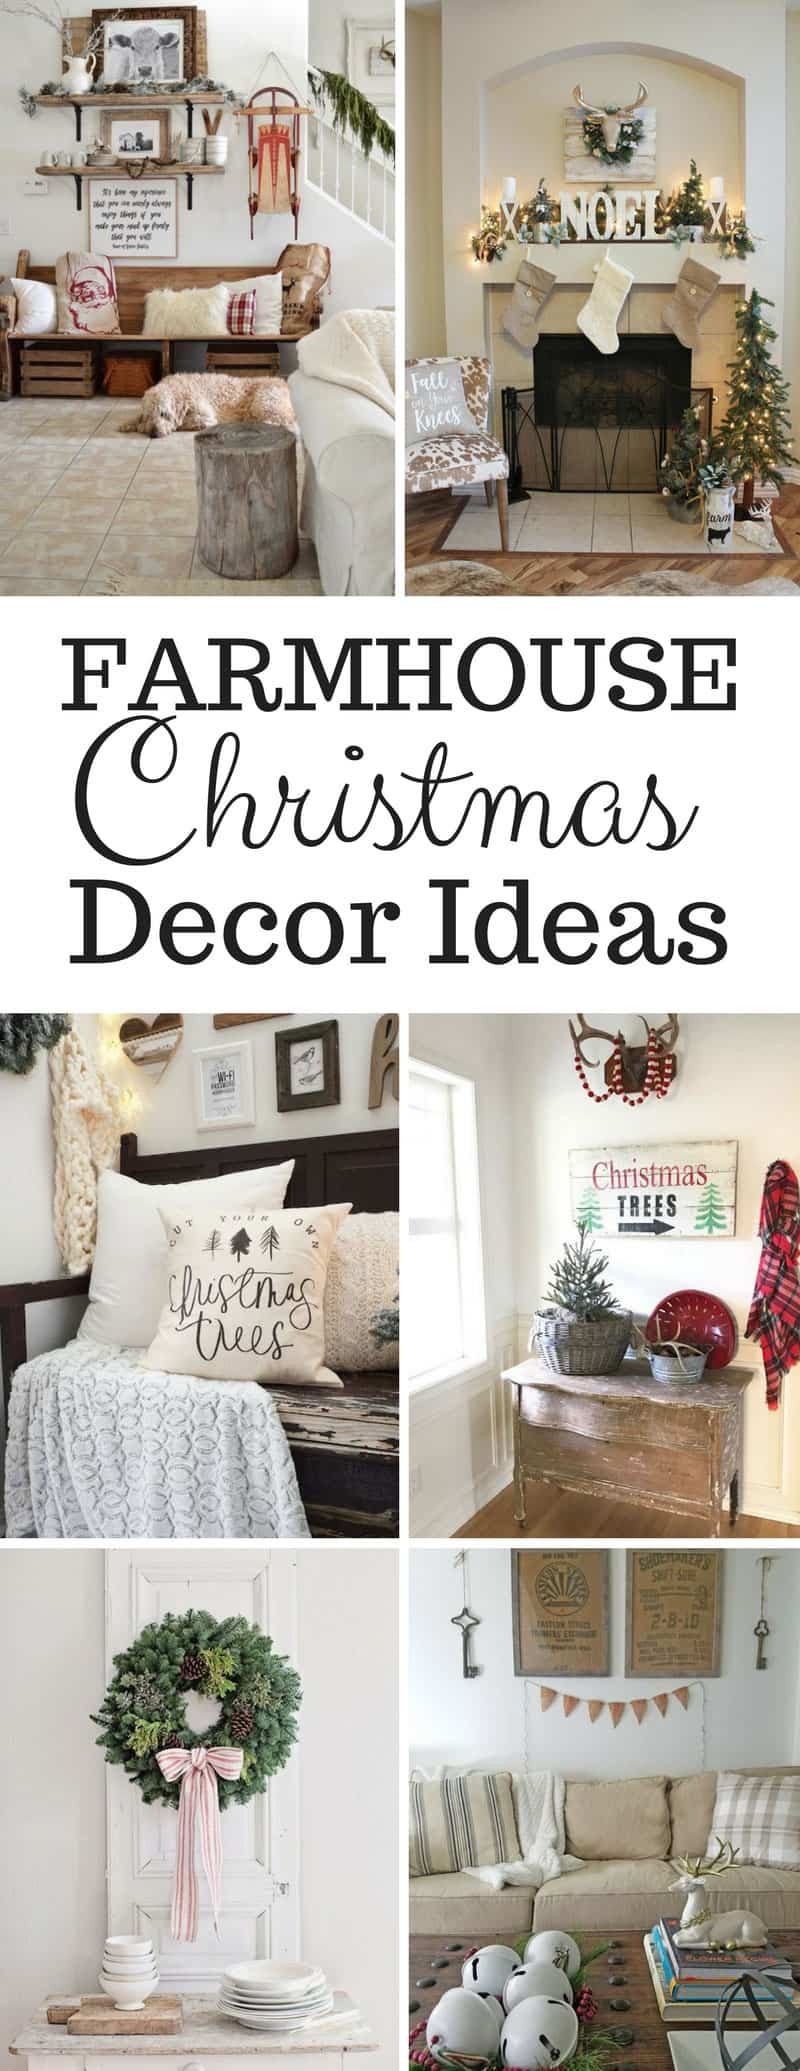 Farmhouse Christmas Decor Ideas - Channel your inner Joanna Gaines with these wonderful Farmhouse Christmas decor ideas... Fixer Upper inspired wreaths, rustic Holiday signs, farmhouse pillows and even a Hot Cocoa Bar! They're all gorgeous and just what you need to festive up your home this Christmas!